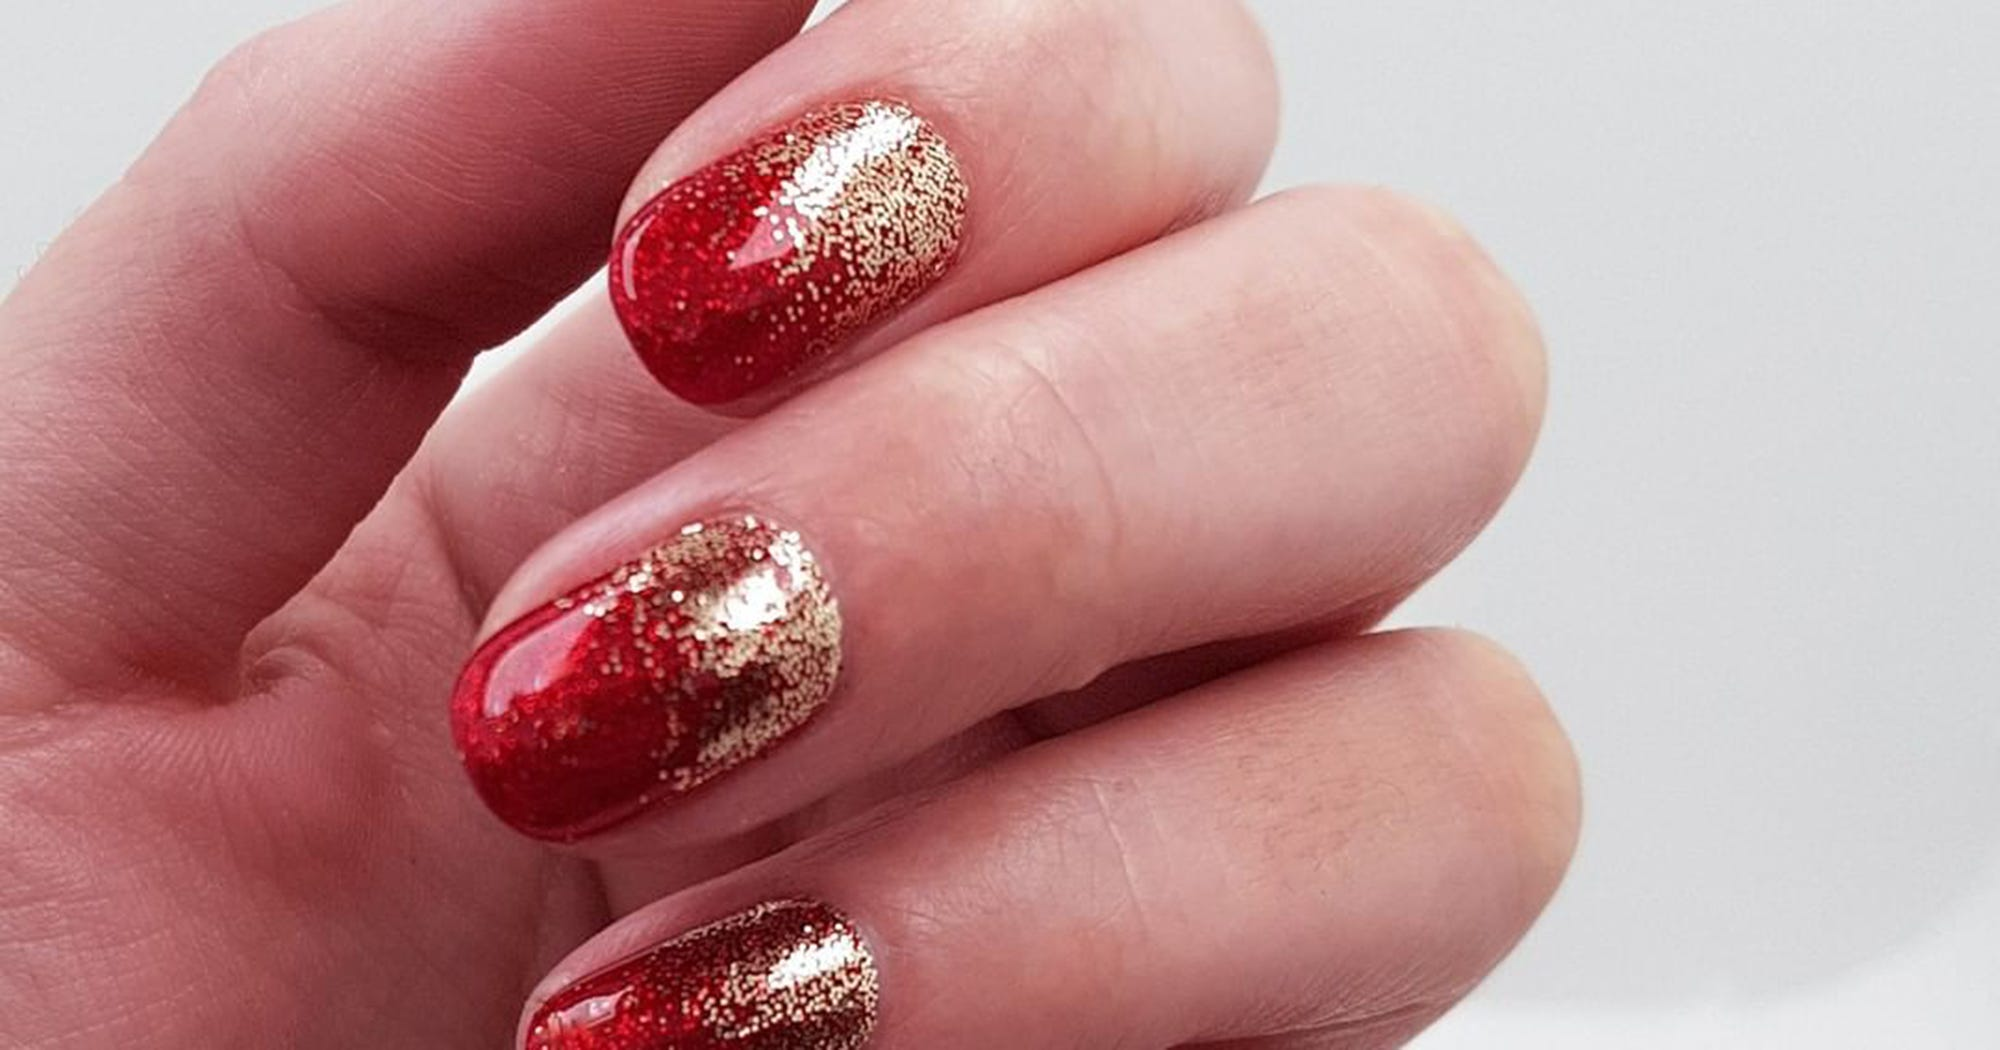 Chinese New Year Nail Art Designs For Red \u0026 Gold Nails